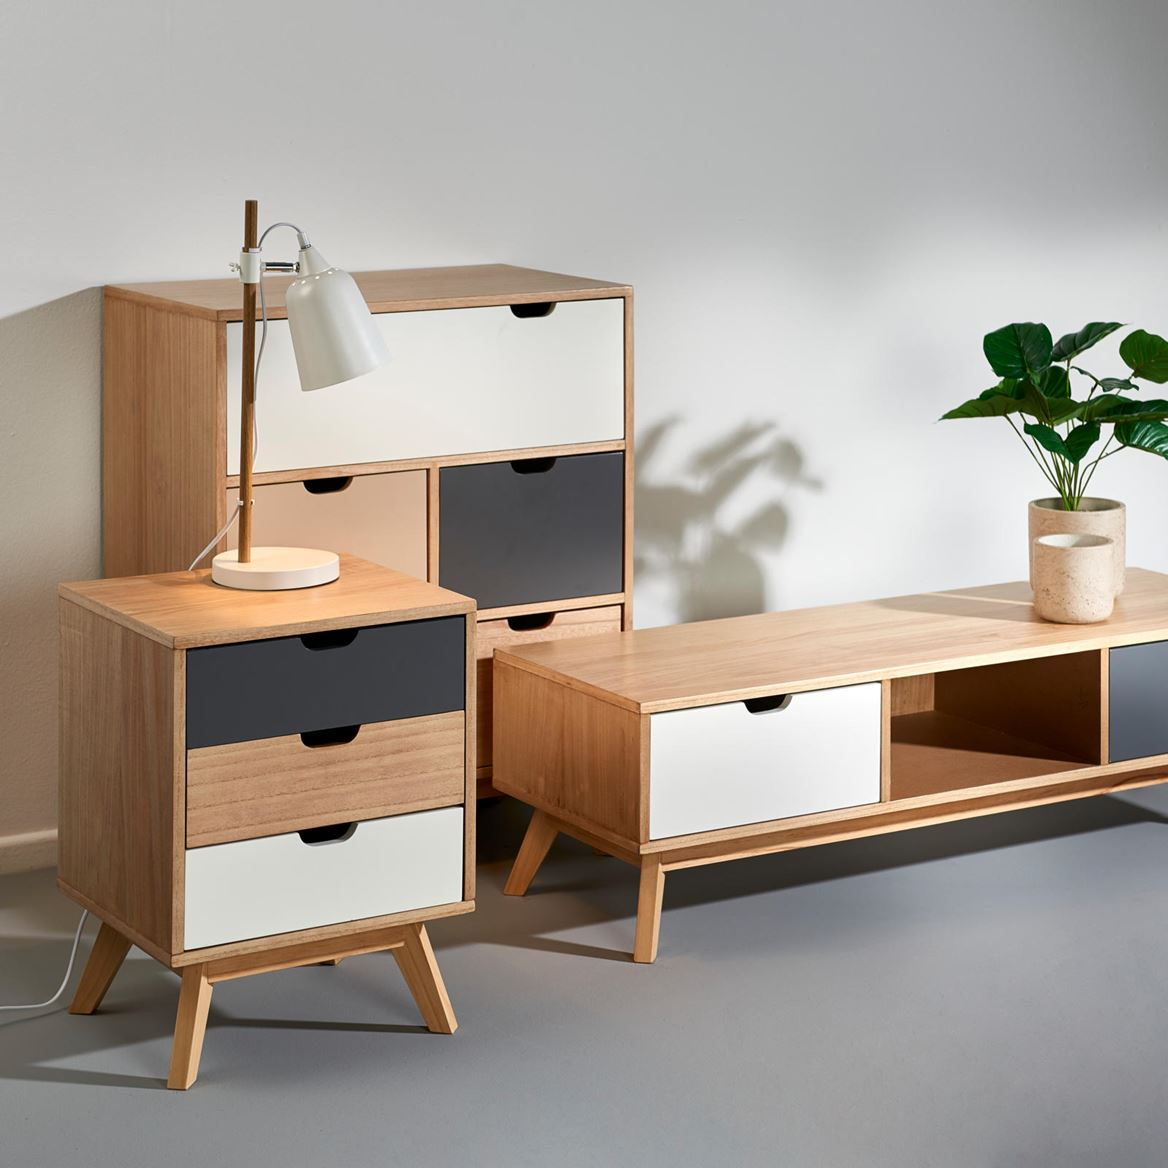 rouen meuble tv produits feelgood pour la maison et le jardin chez casa. Black Bedroom Furniture Sets. Home Design Ideas